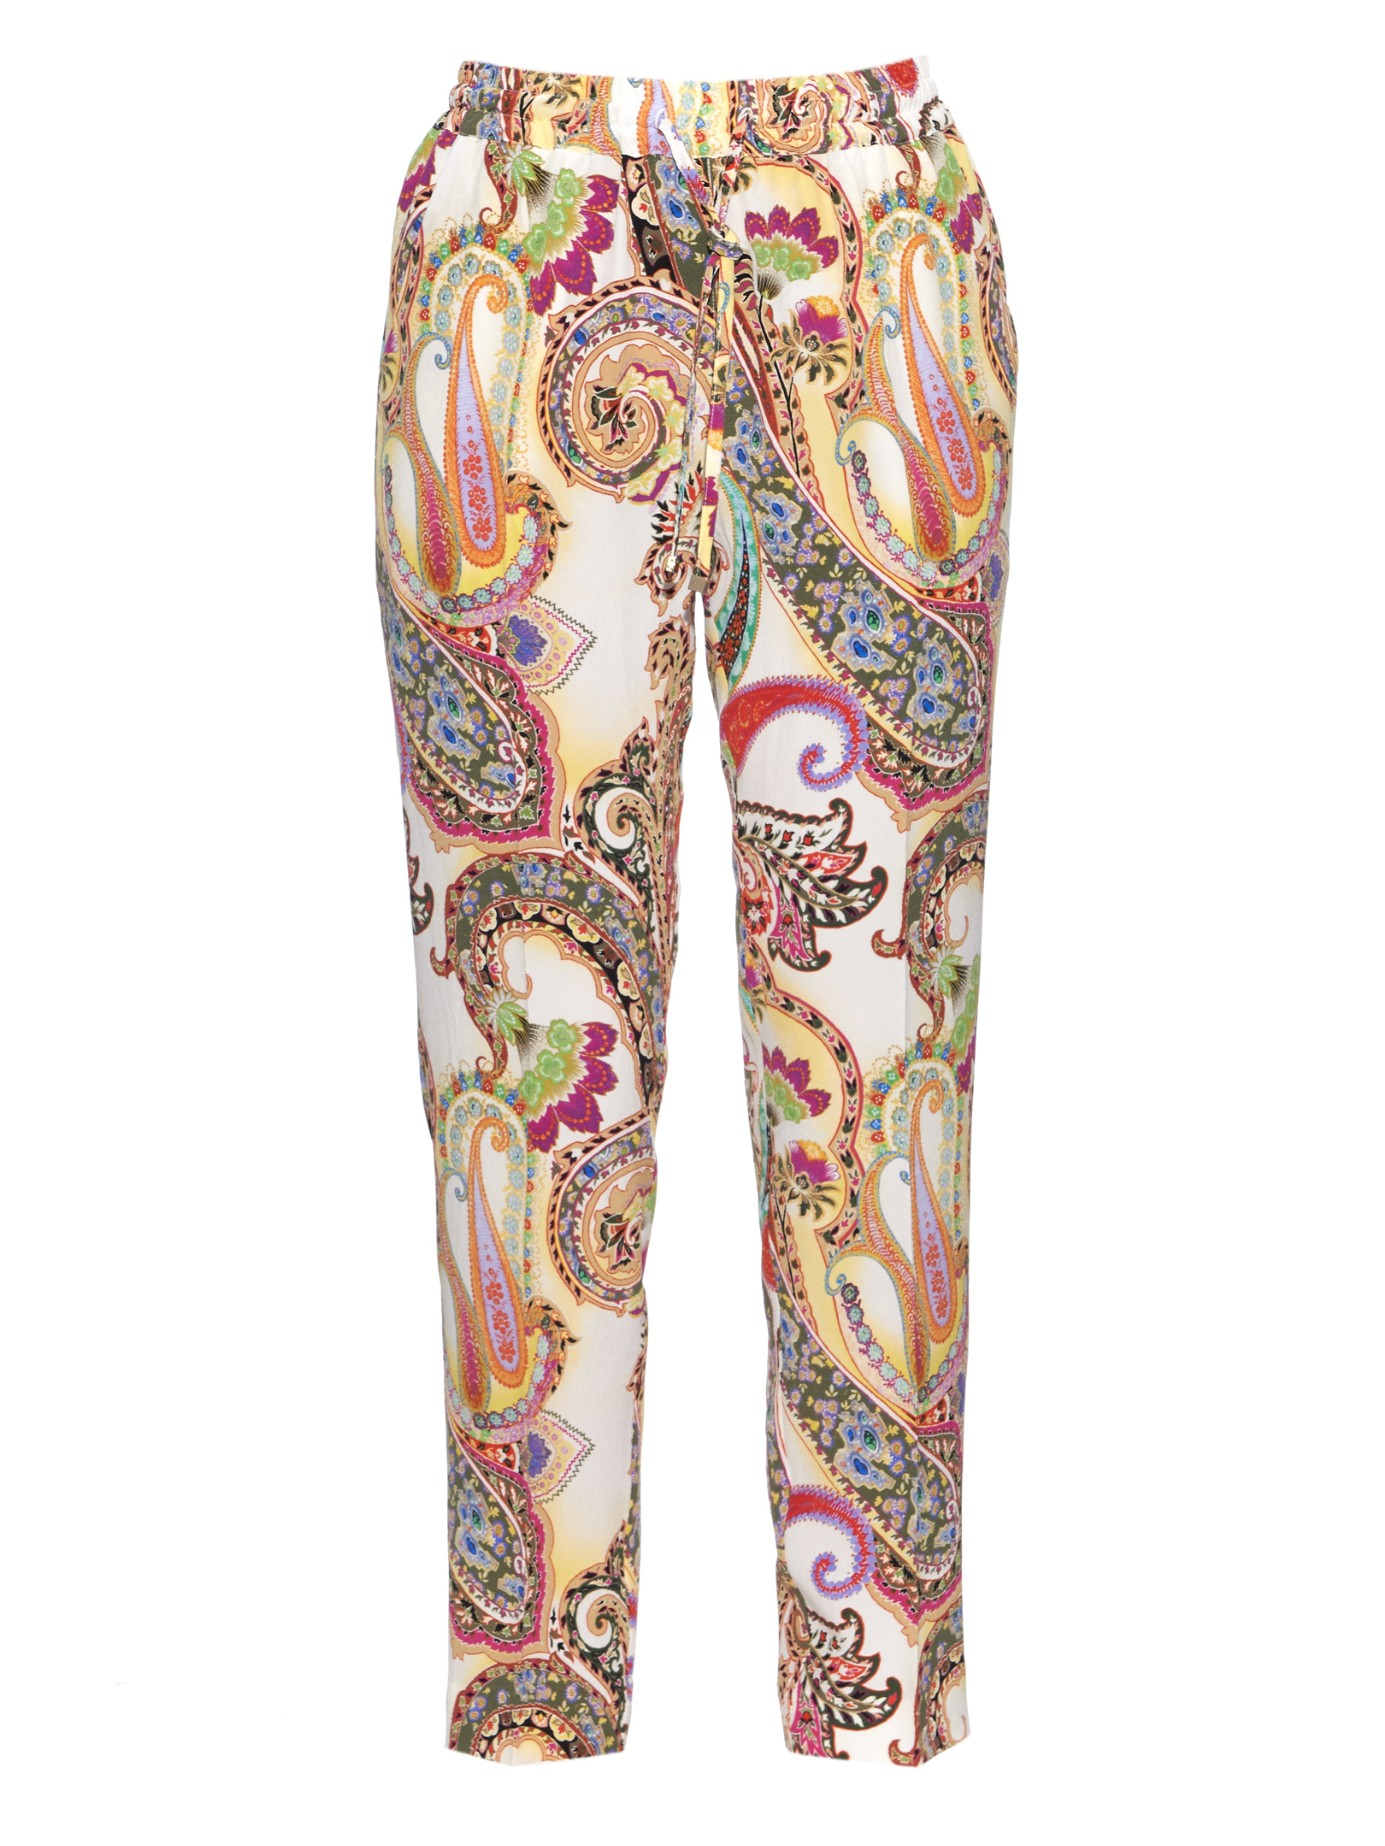 paisley print trousers - White Hemisphere Sneakernews Online Clearance Reliable Shopping Online TAEVLcVAc